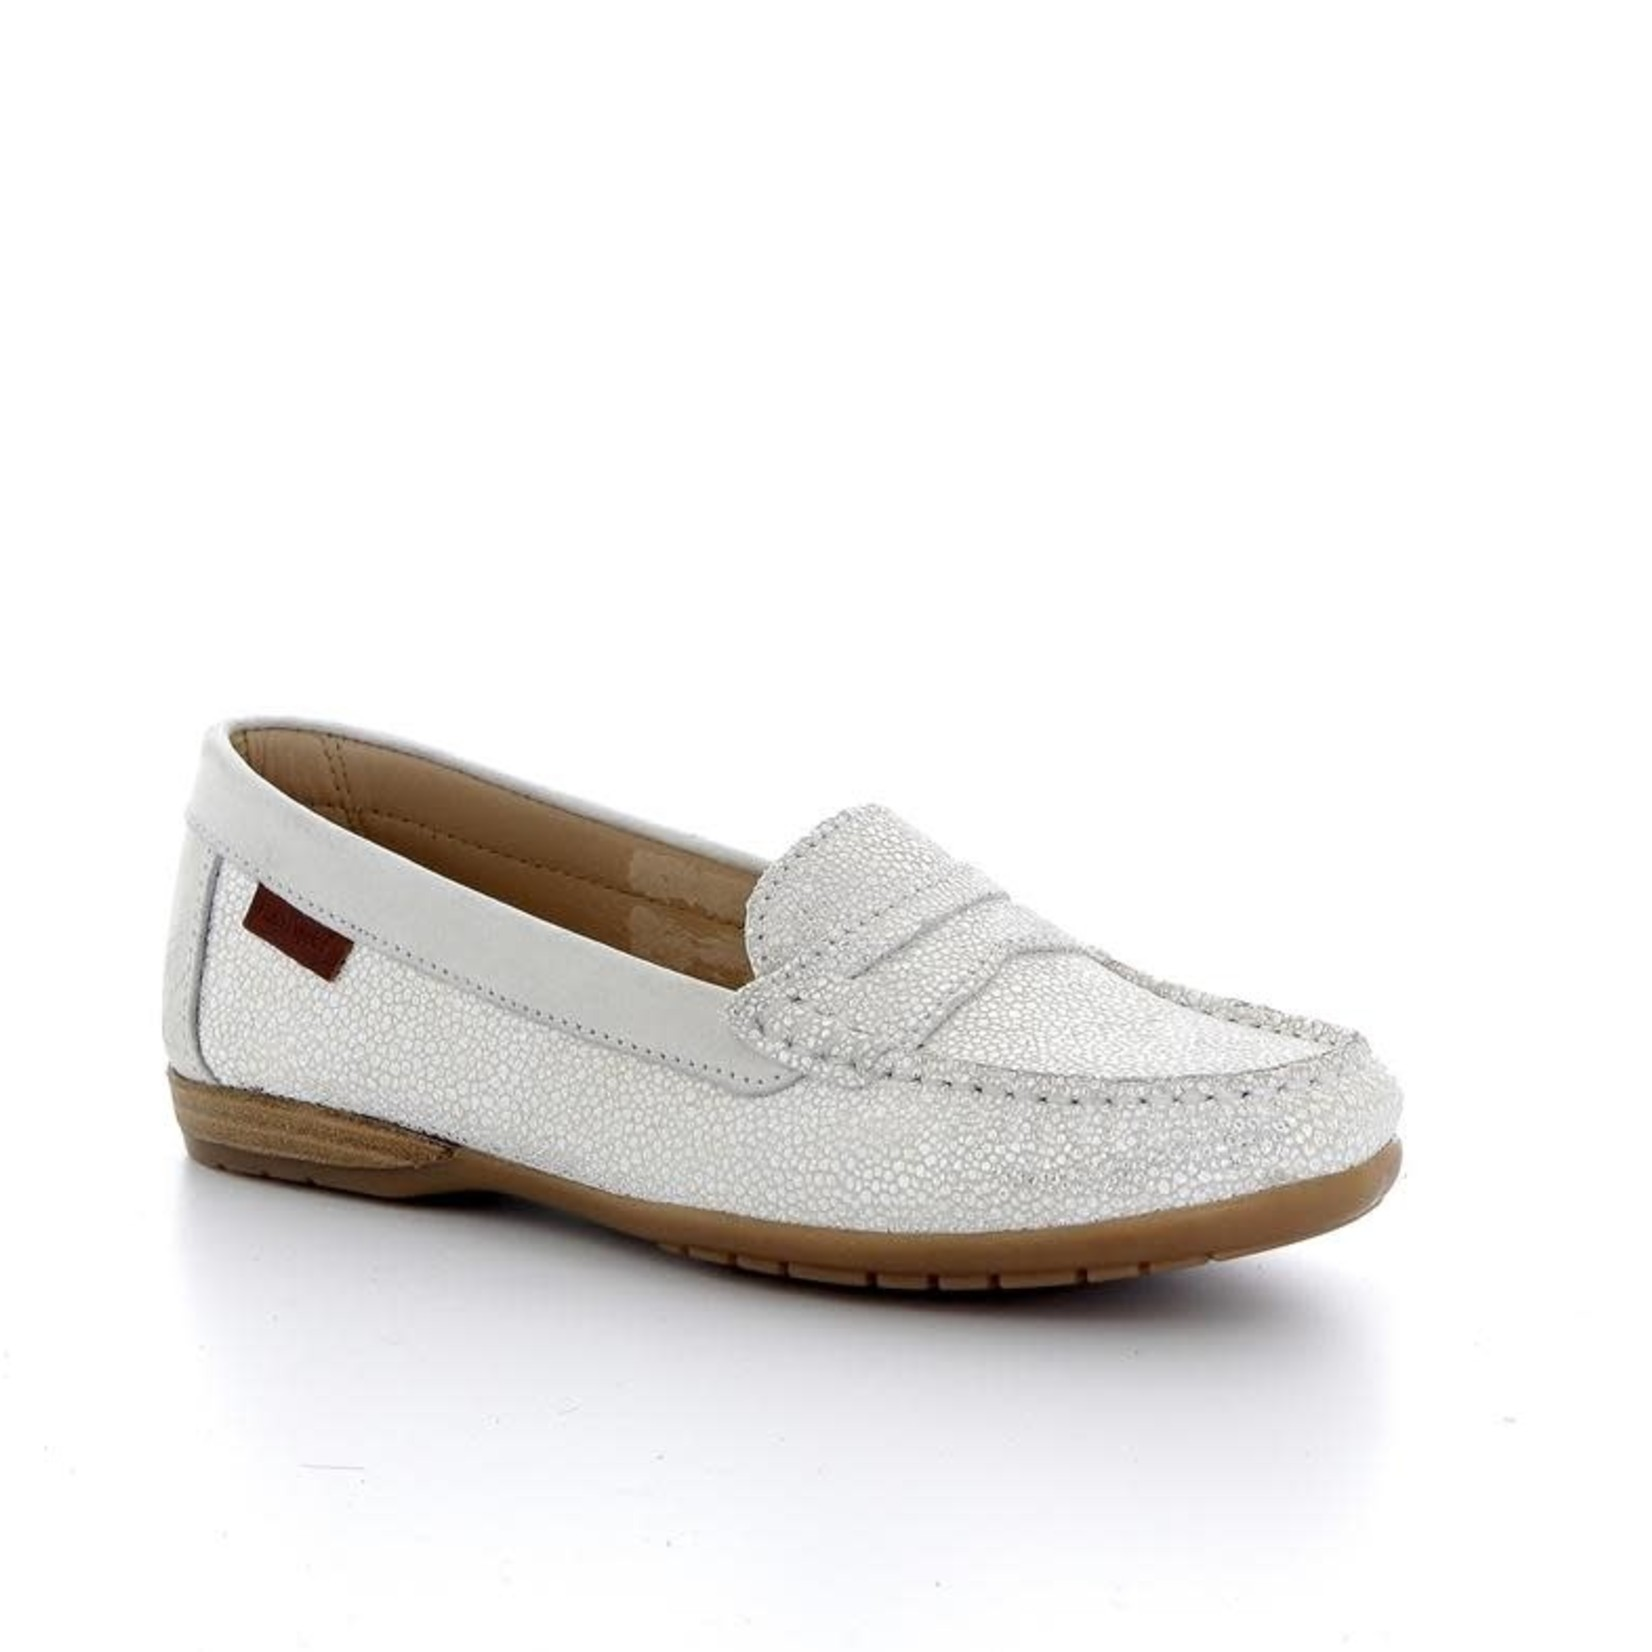 Hush Puppies Moccasin Wit